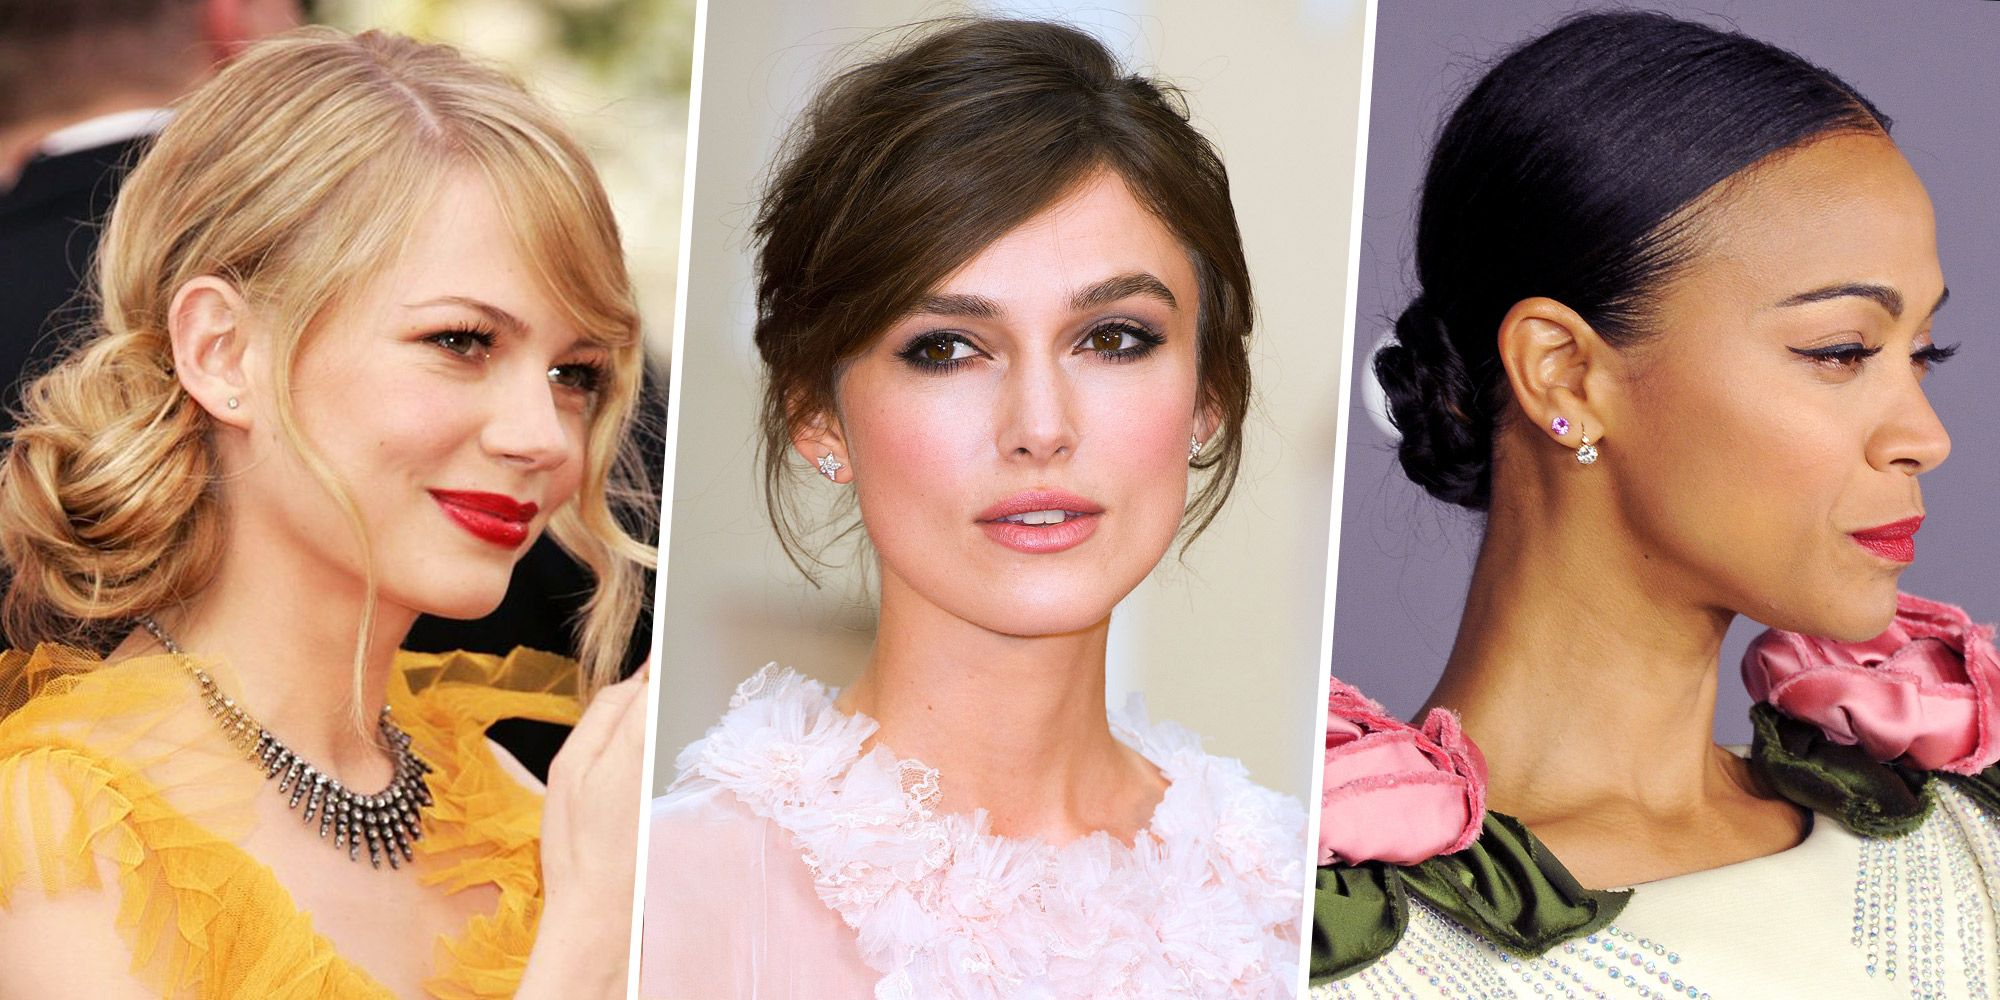 Hair Styles For Short Hair For Wedding Guest: 13 Wedding Hairstyles Perfect For Summer